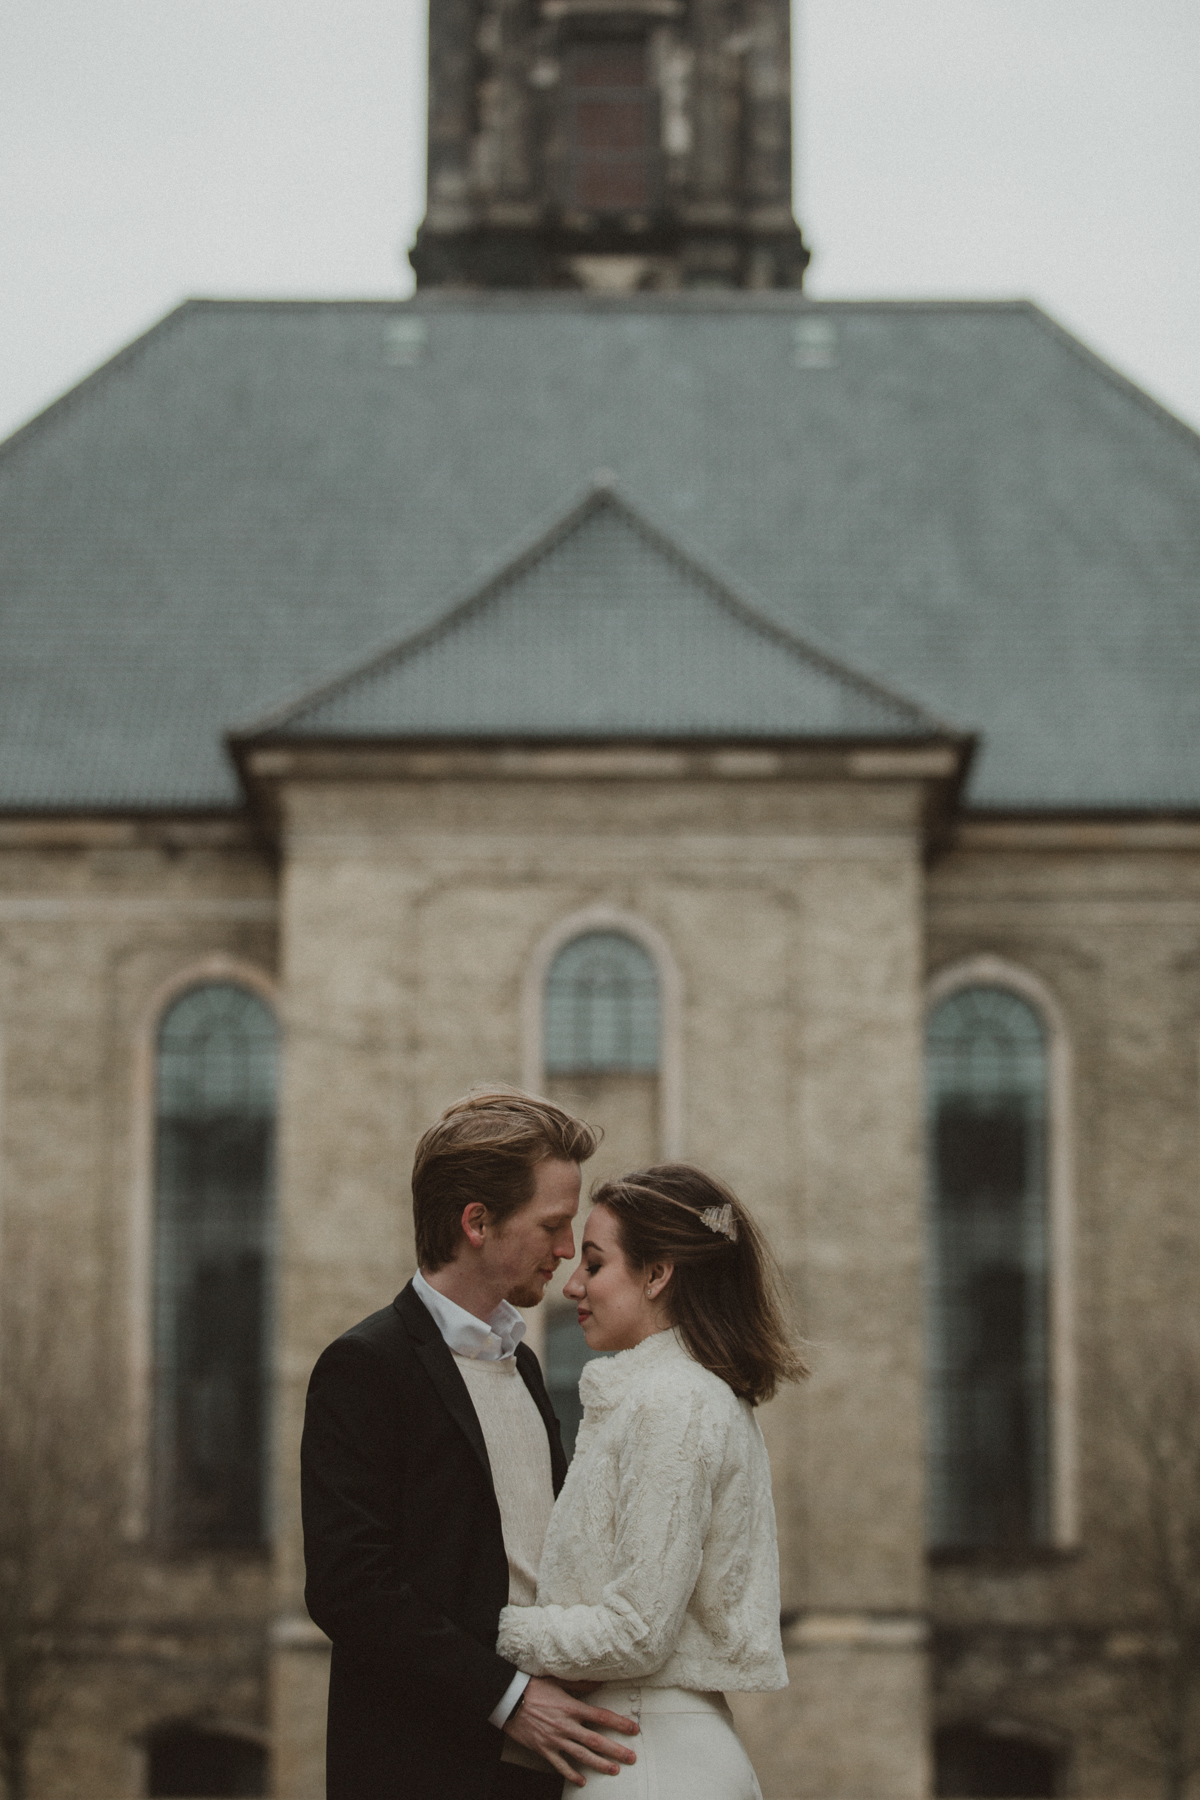 Destination wedding photographer Copenhagen